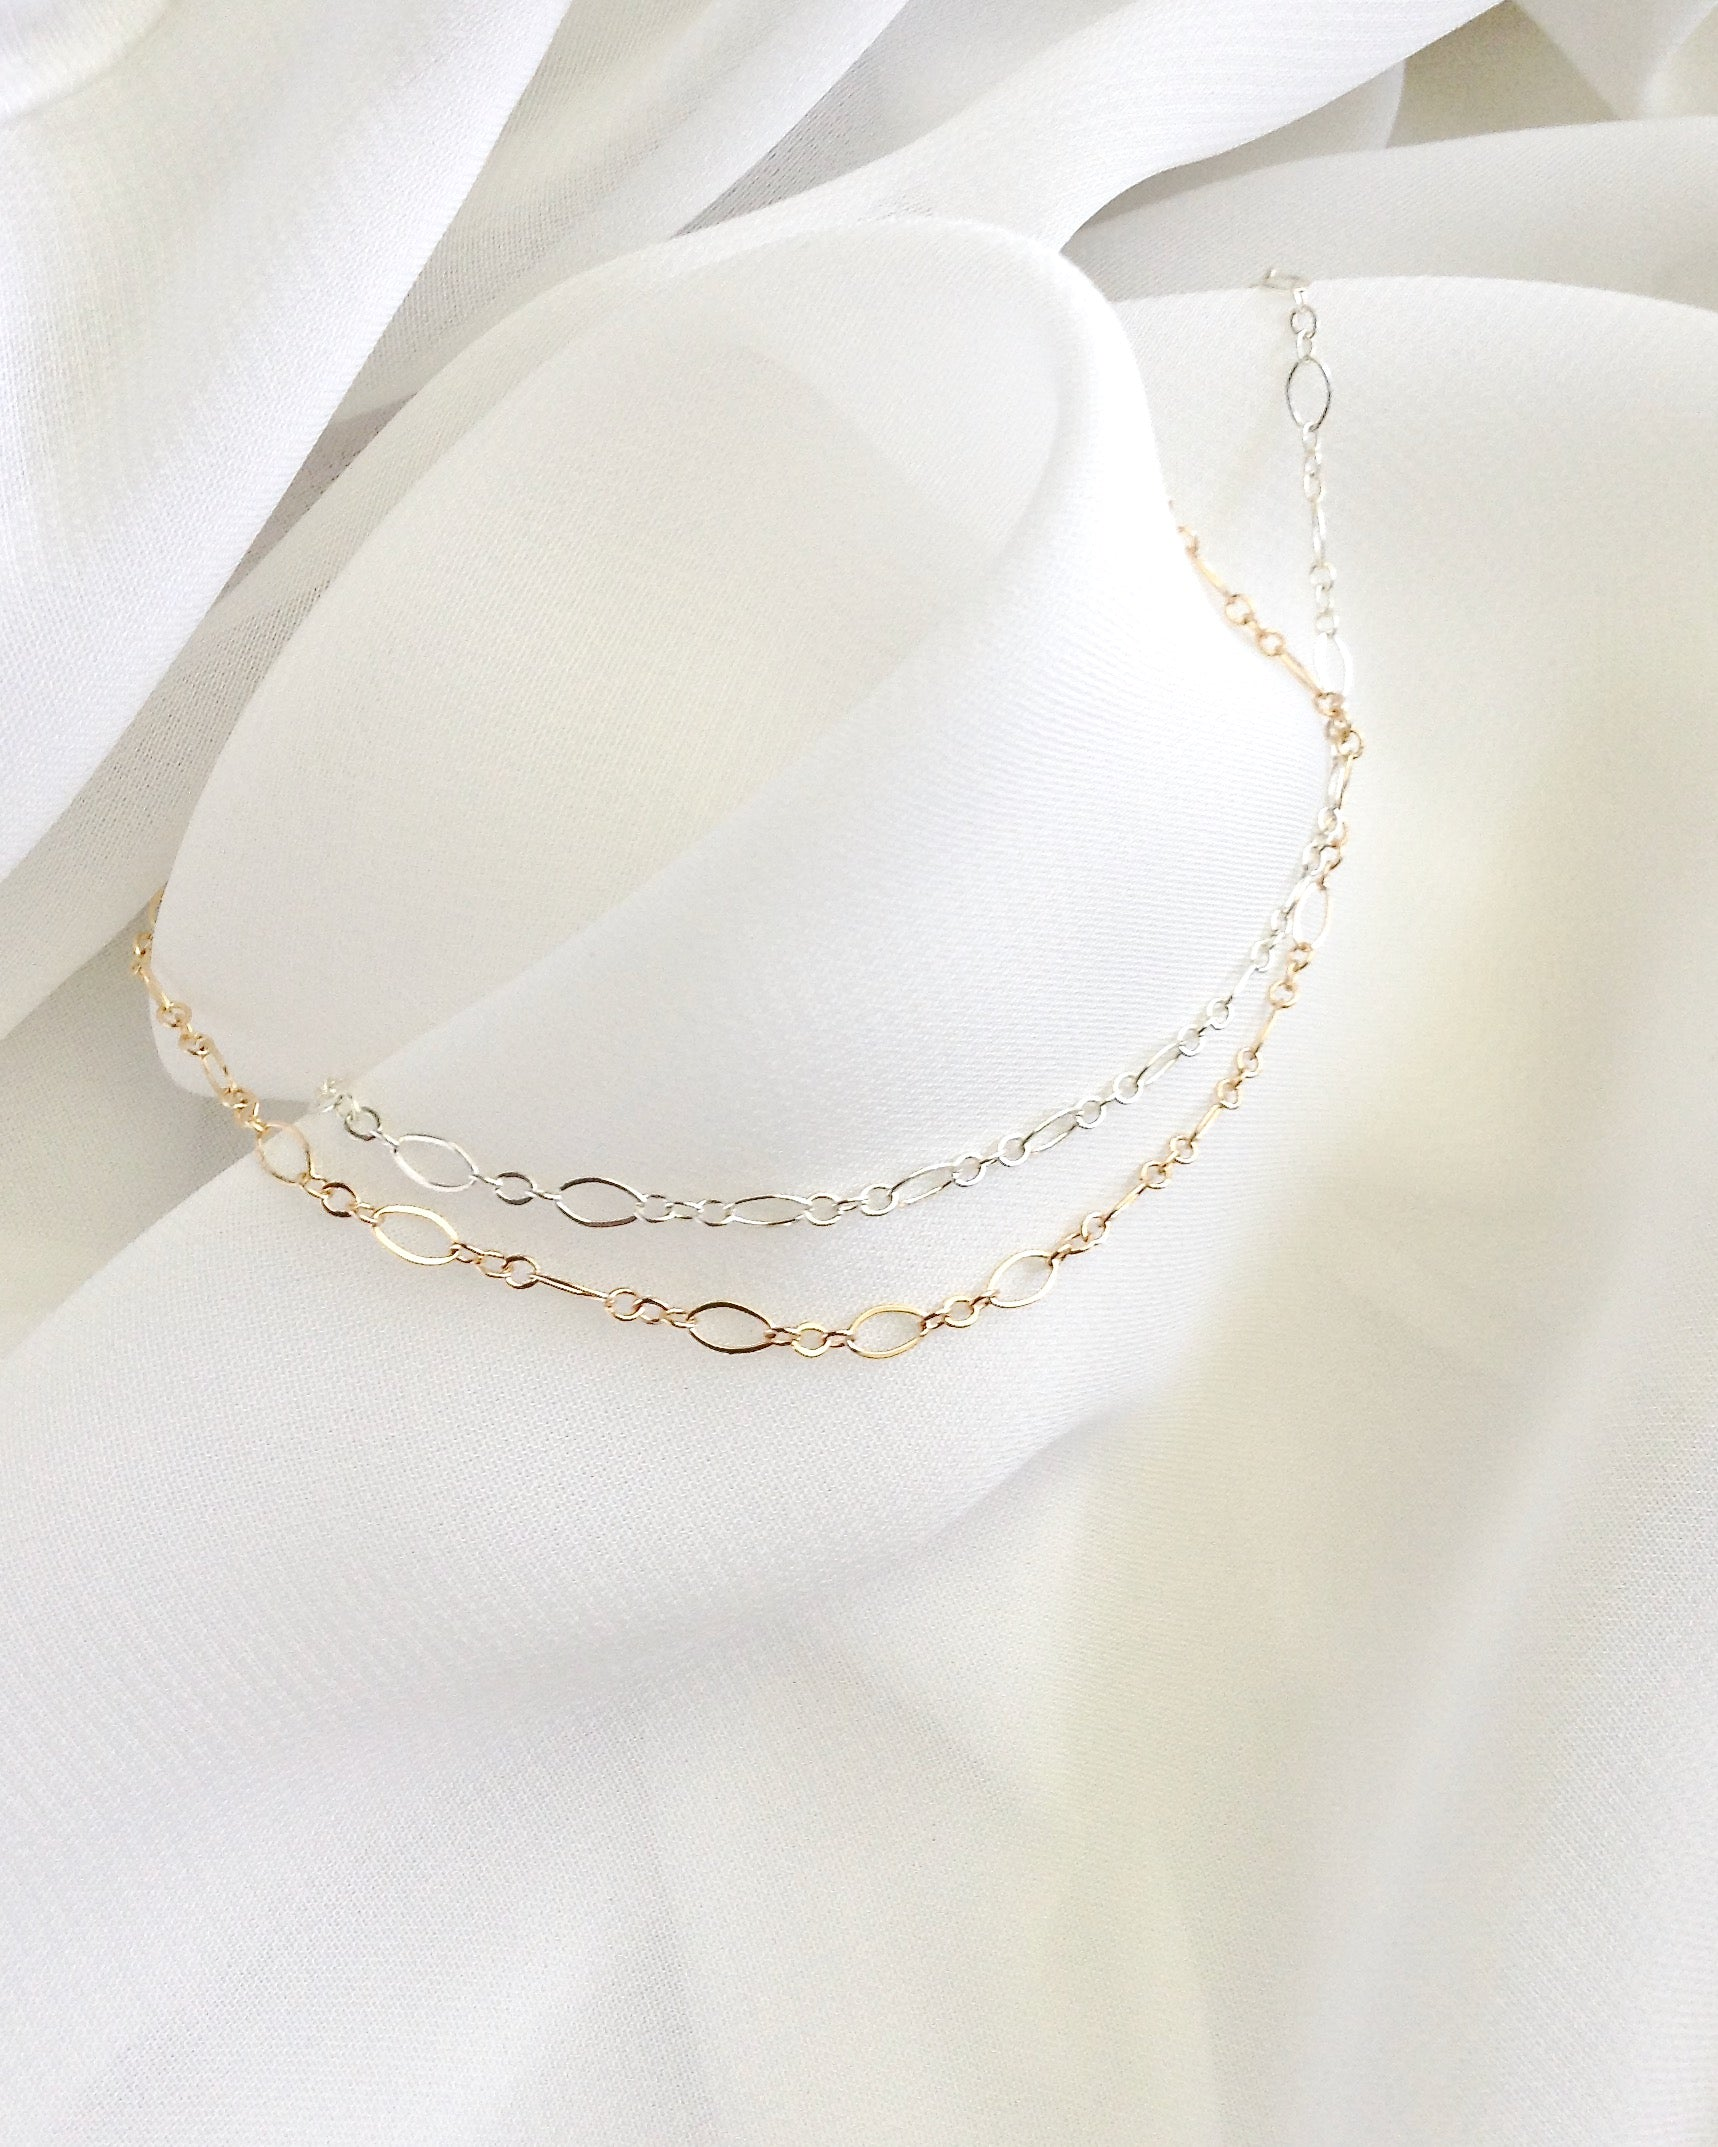 Dainty Anklet in Gold Filled or Sterling Silver | Simple Everyday Classy Anklet | IB Jewelry